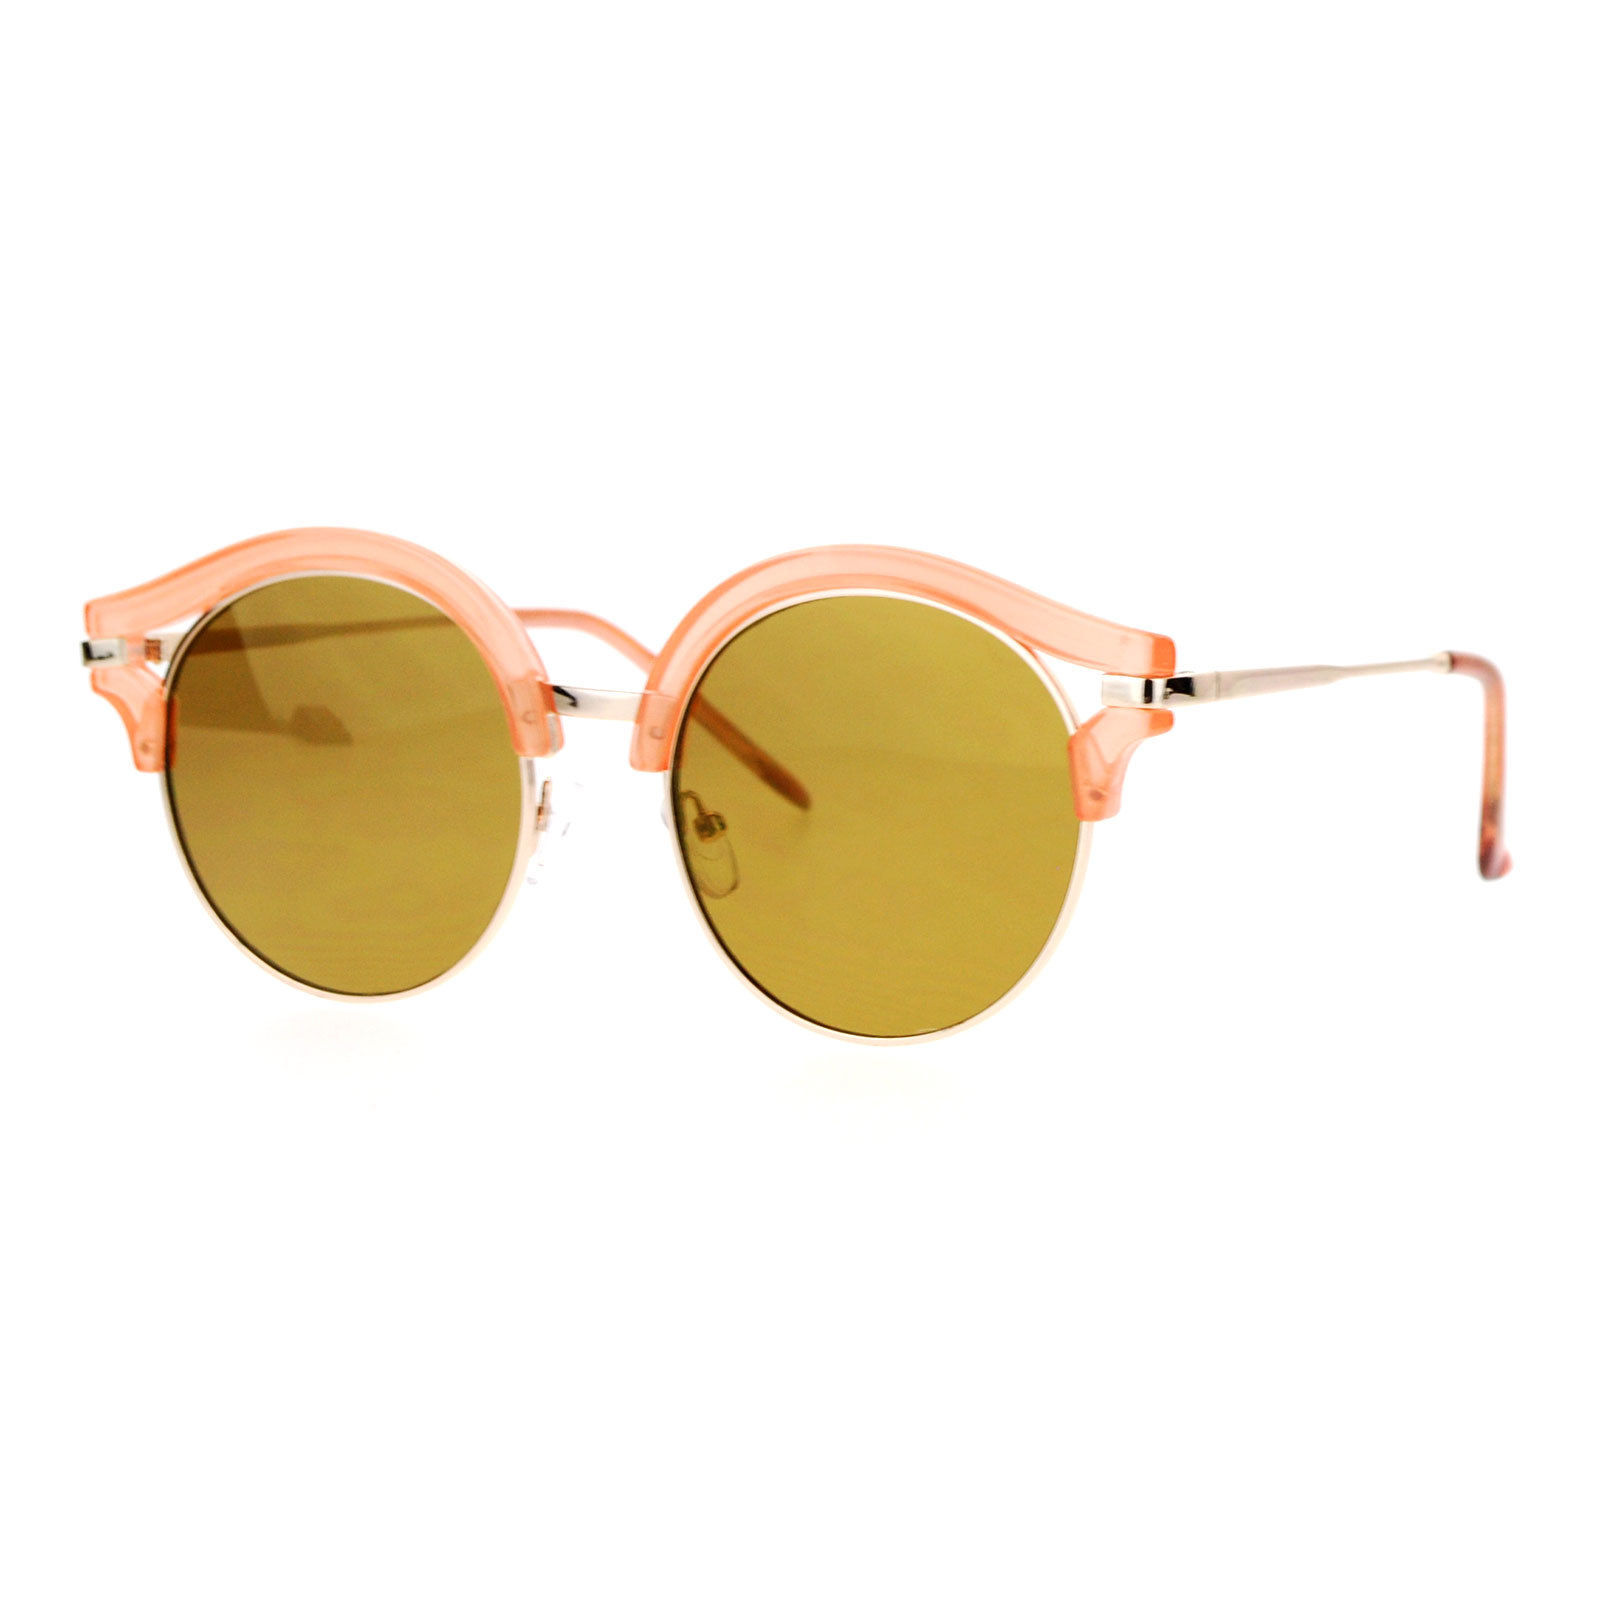 Womens Fashion Sunglasses Round Circle Accent Top Mirror Lens